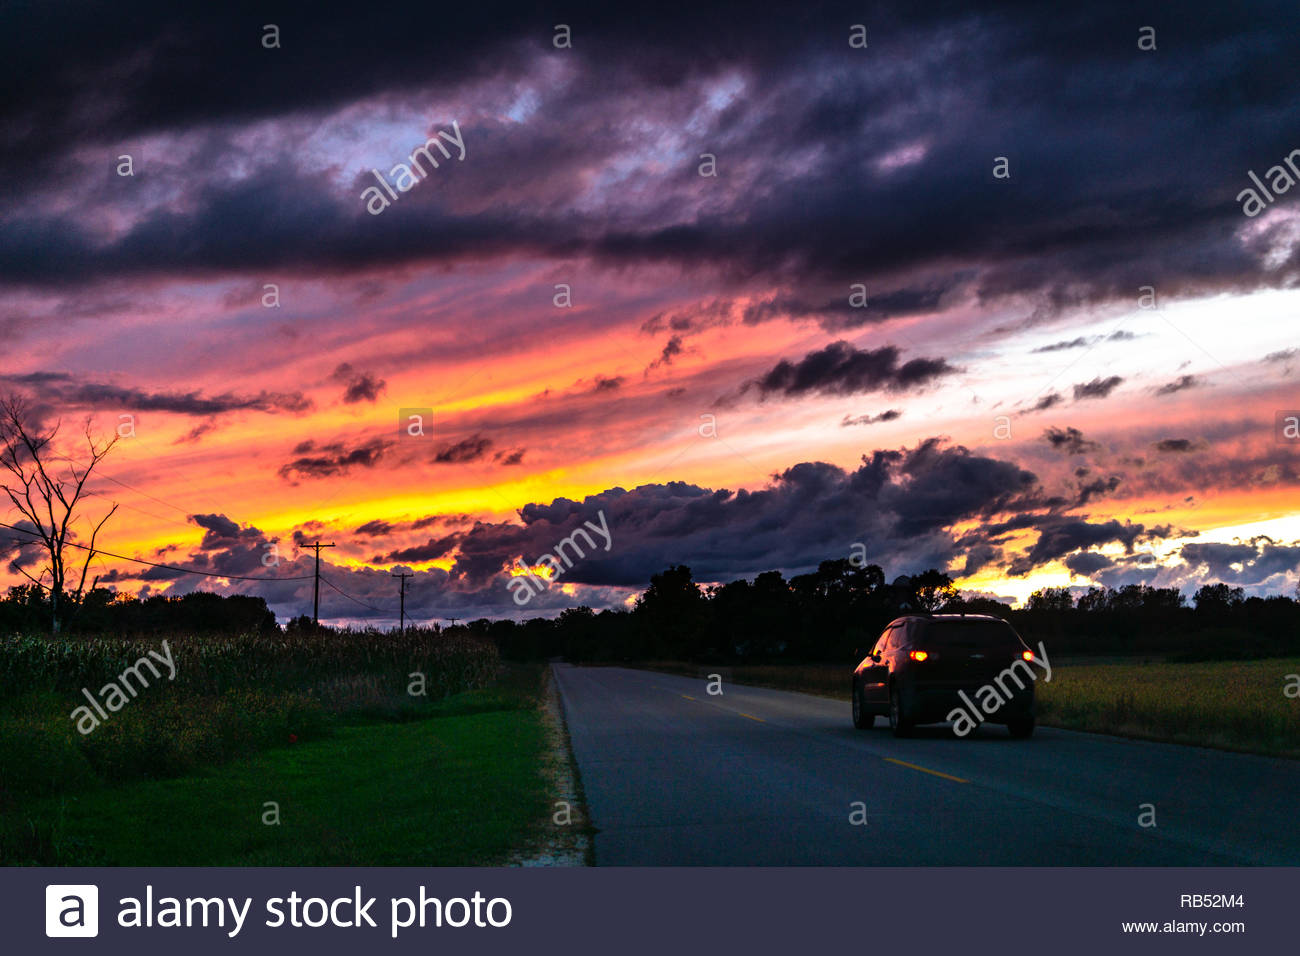 Black car driving into the sunset on a country road with the color reflecting off the paint and windows - Stock Image